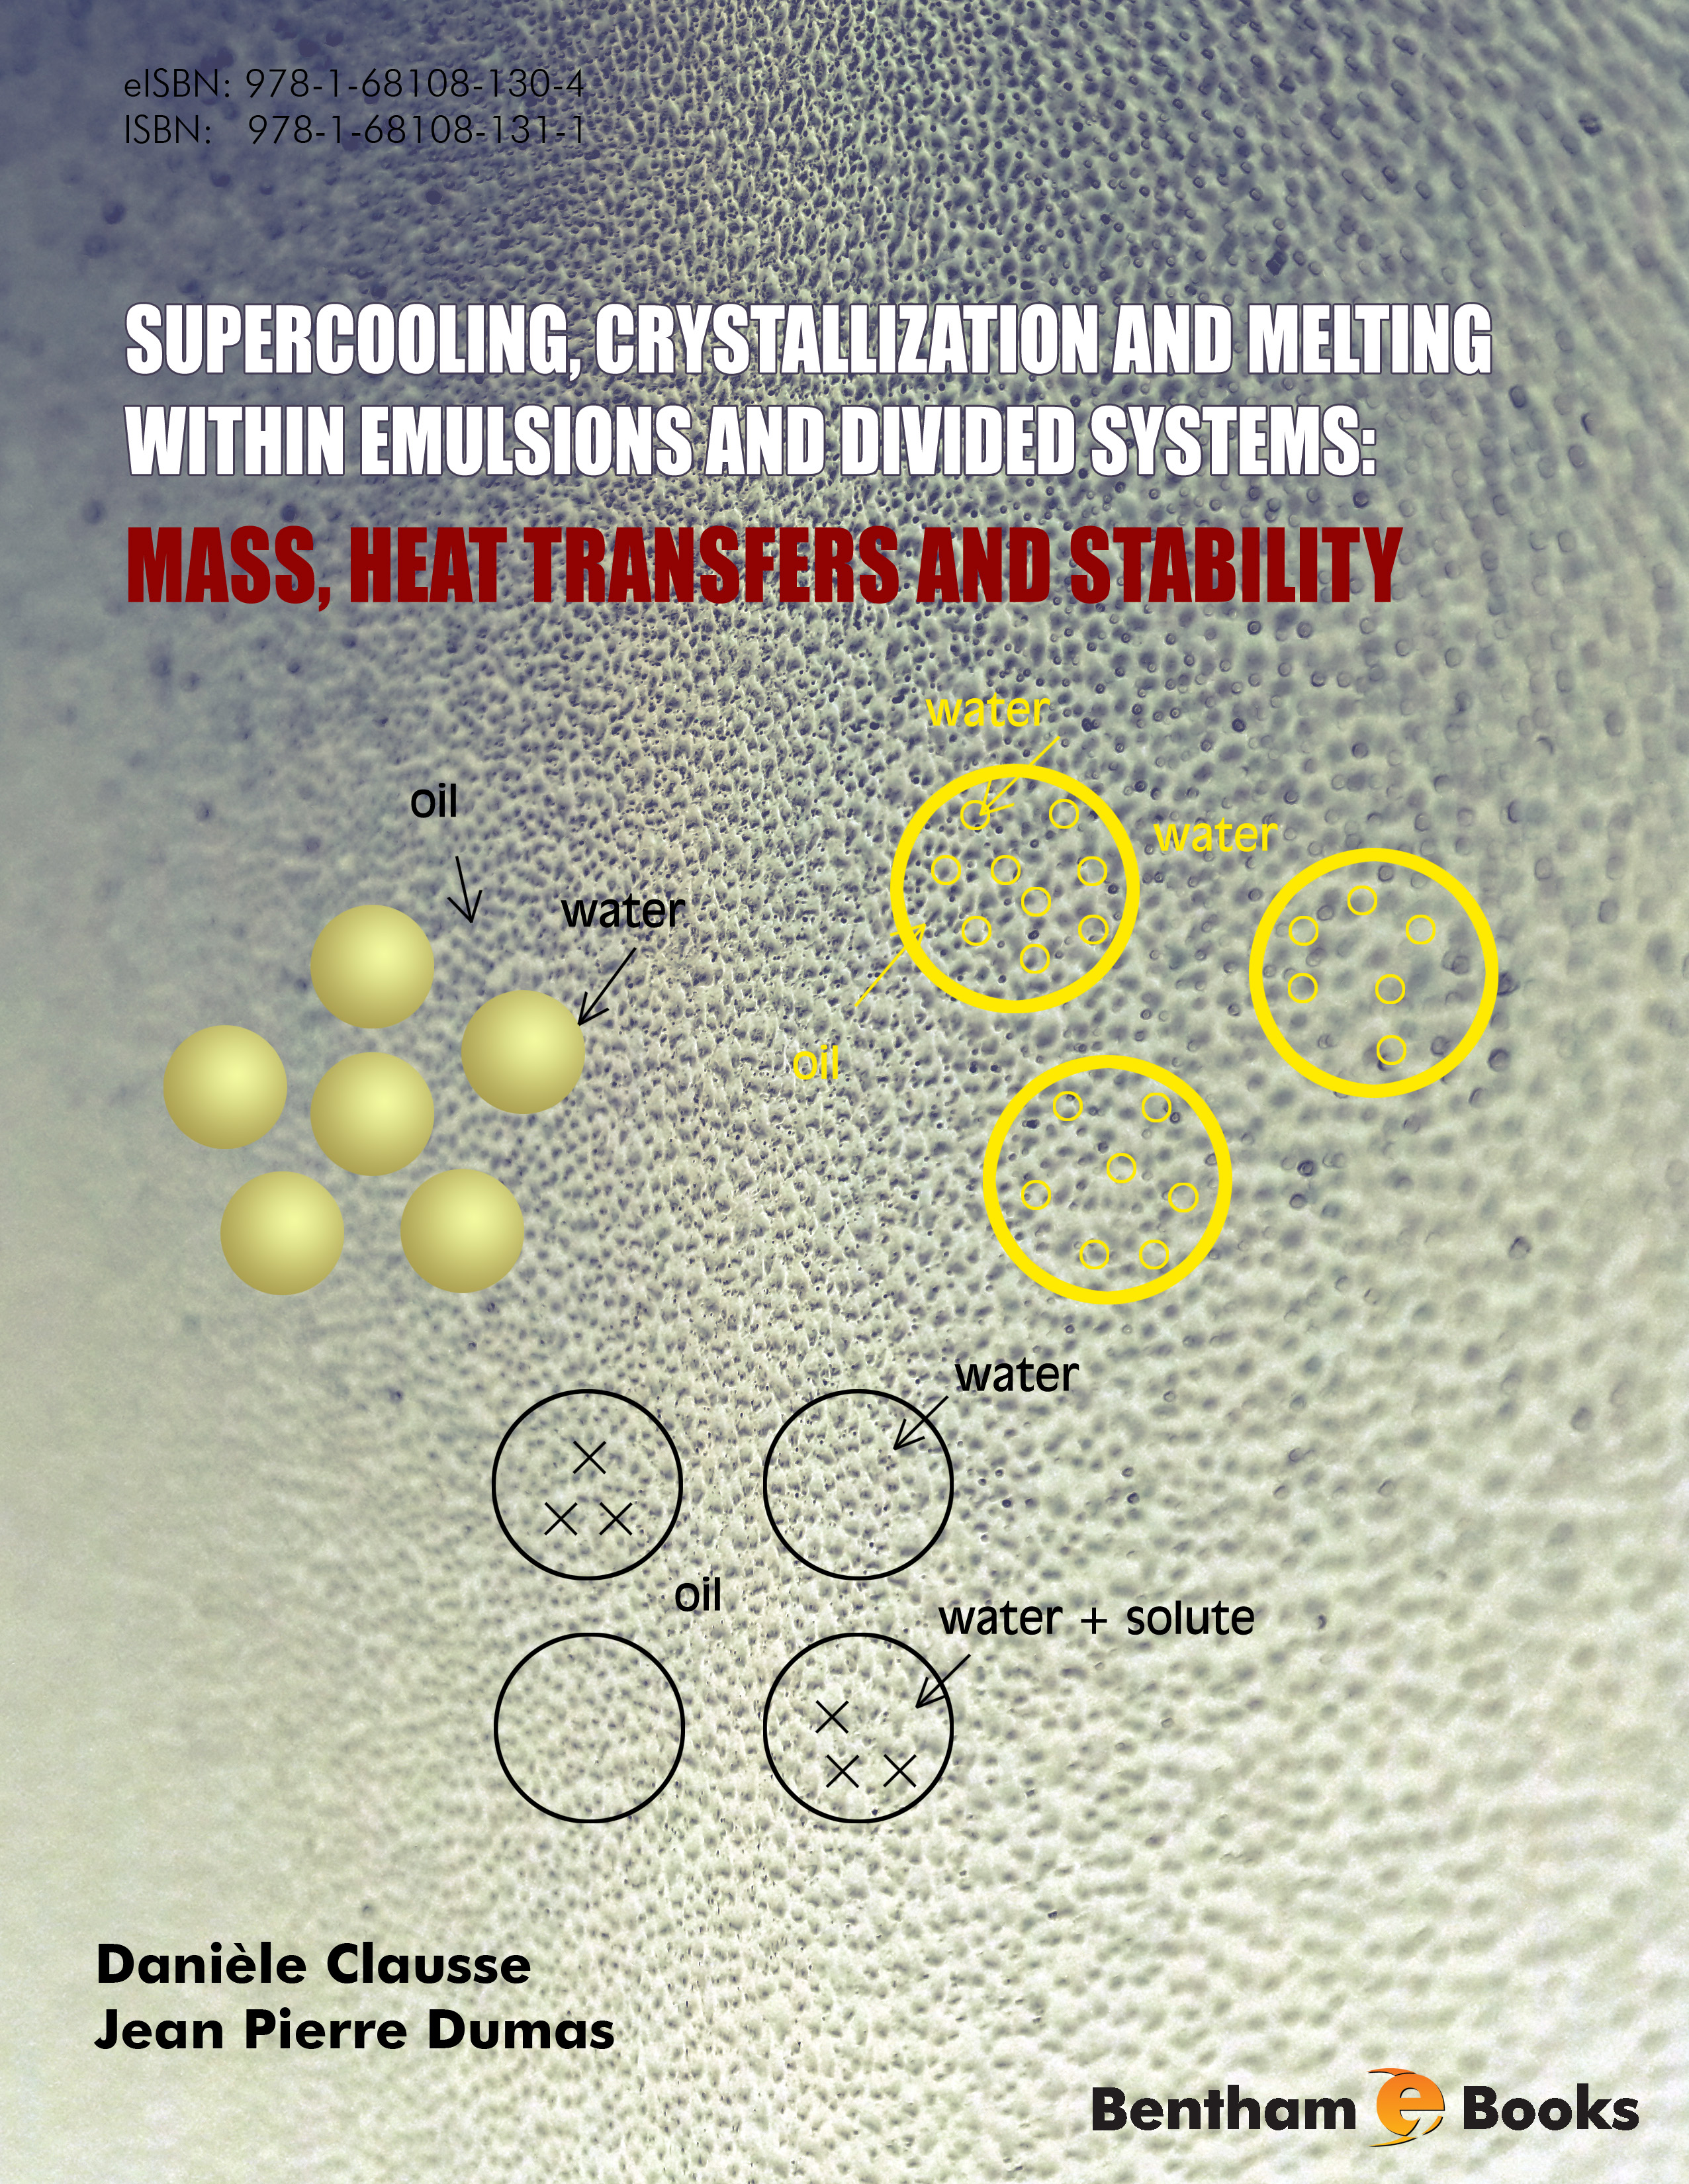 Supercooling, Crystallization and Melting within Emulsions and Divided Systems: Mass, Heat Transfers and Stability